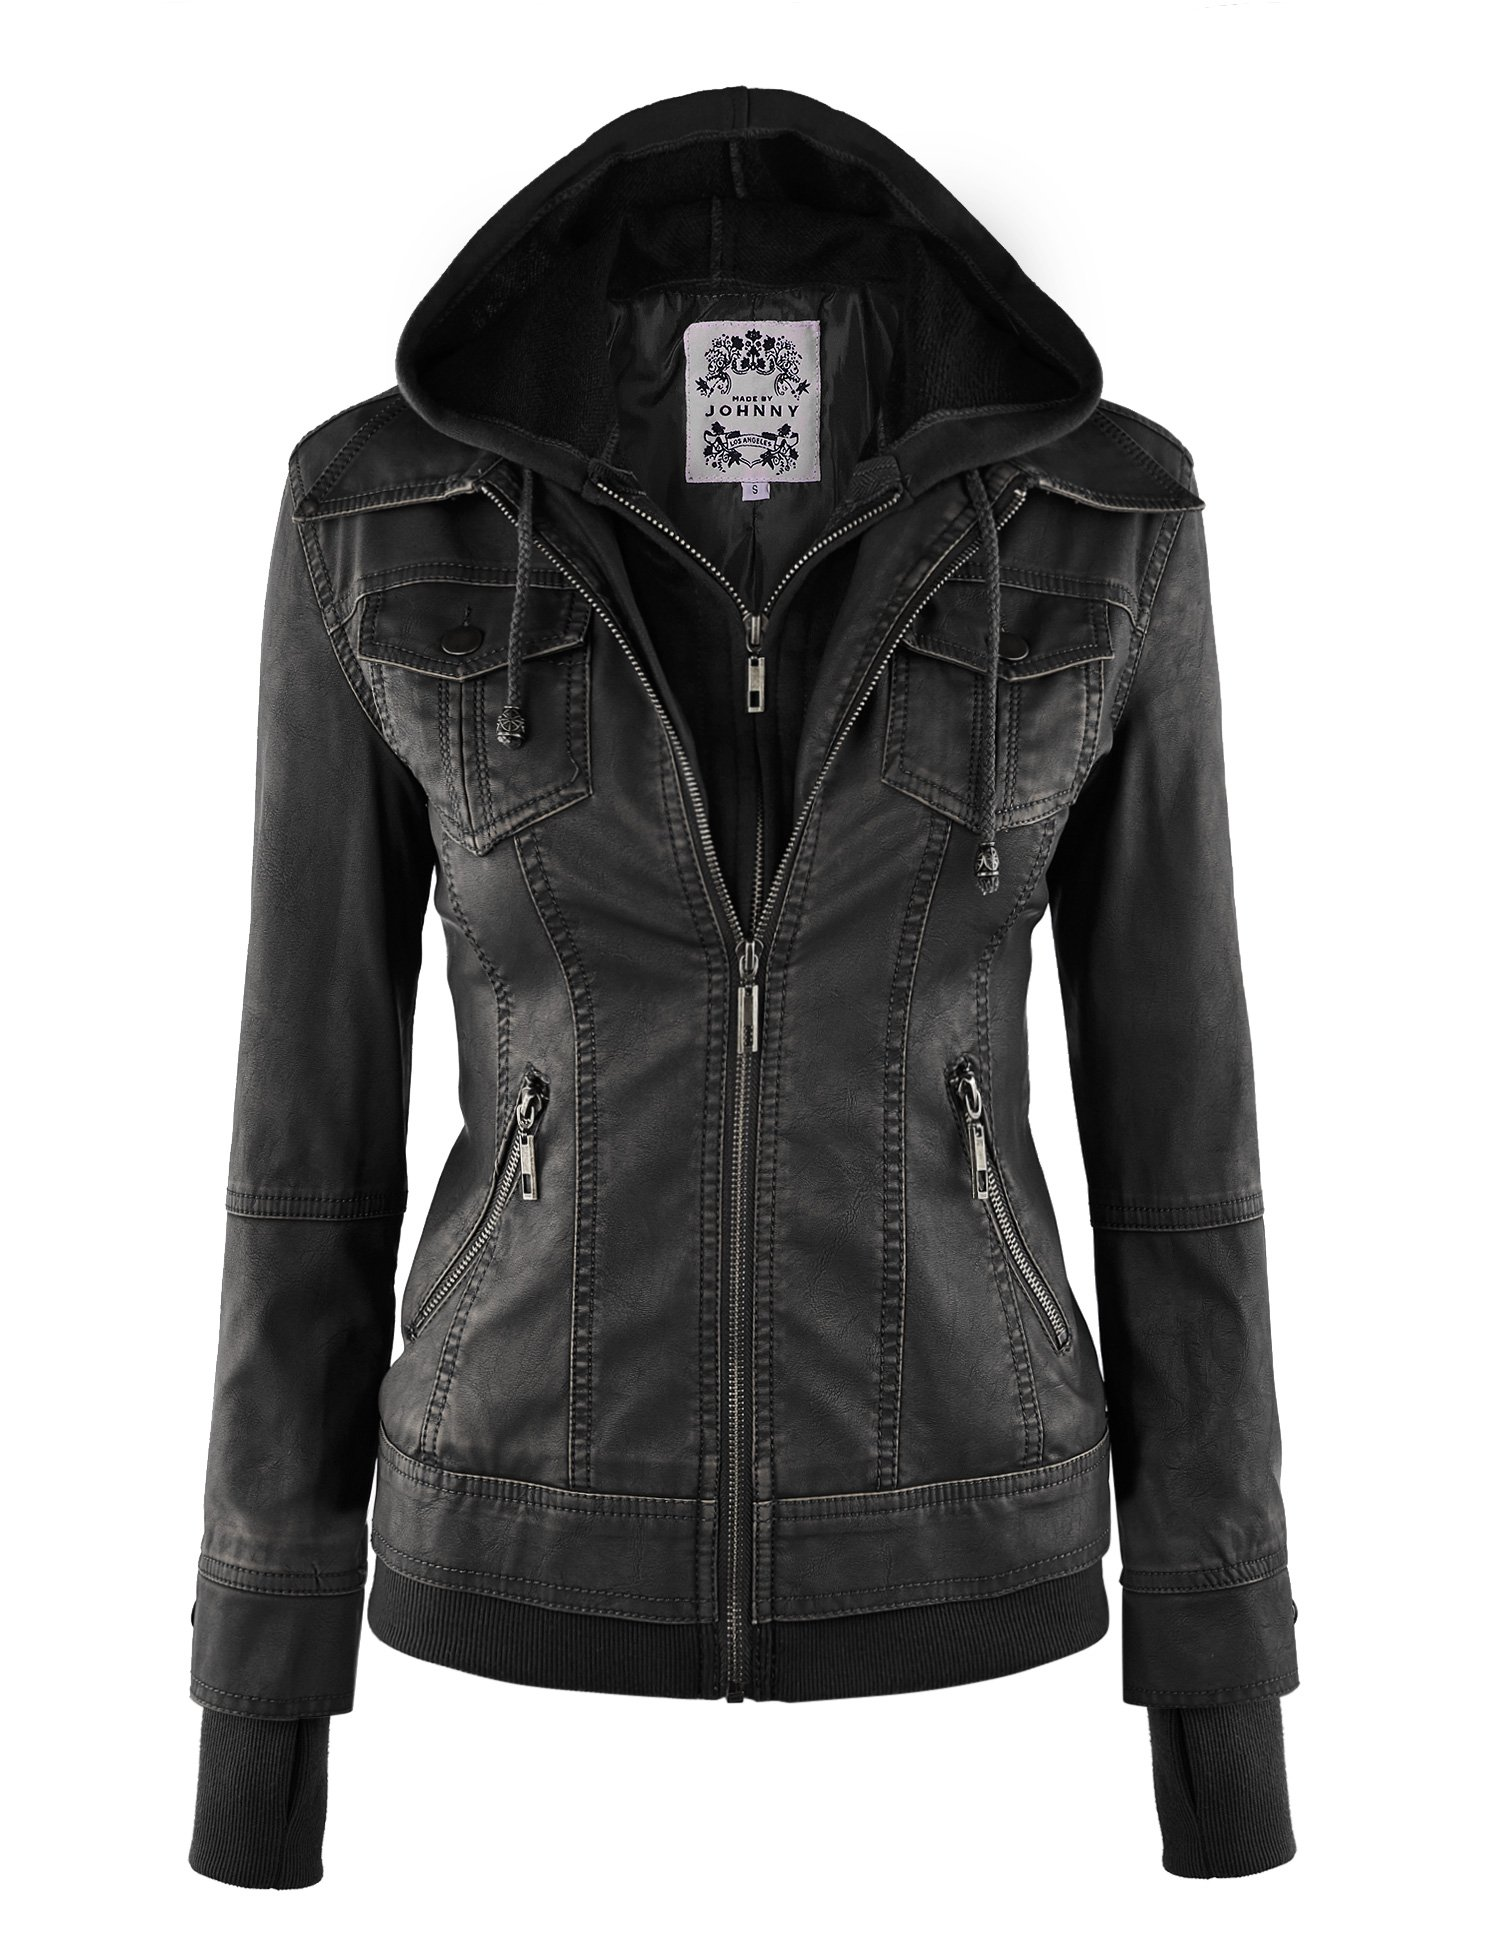 Made By Johnny WJC664 Womens Faux Leather Jacket with Hoodie XL Black